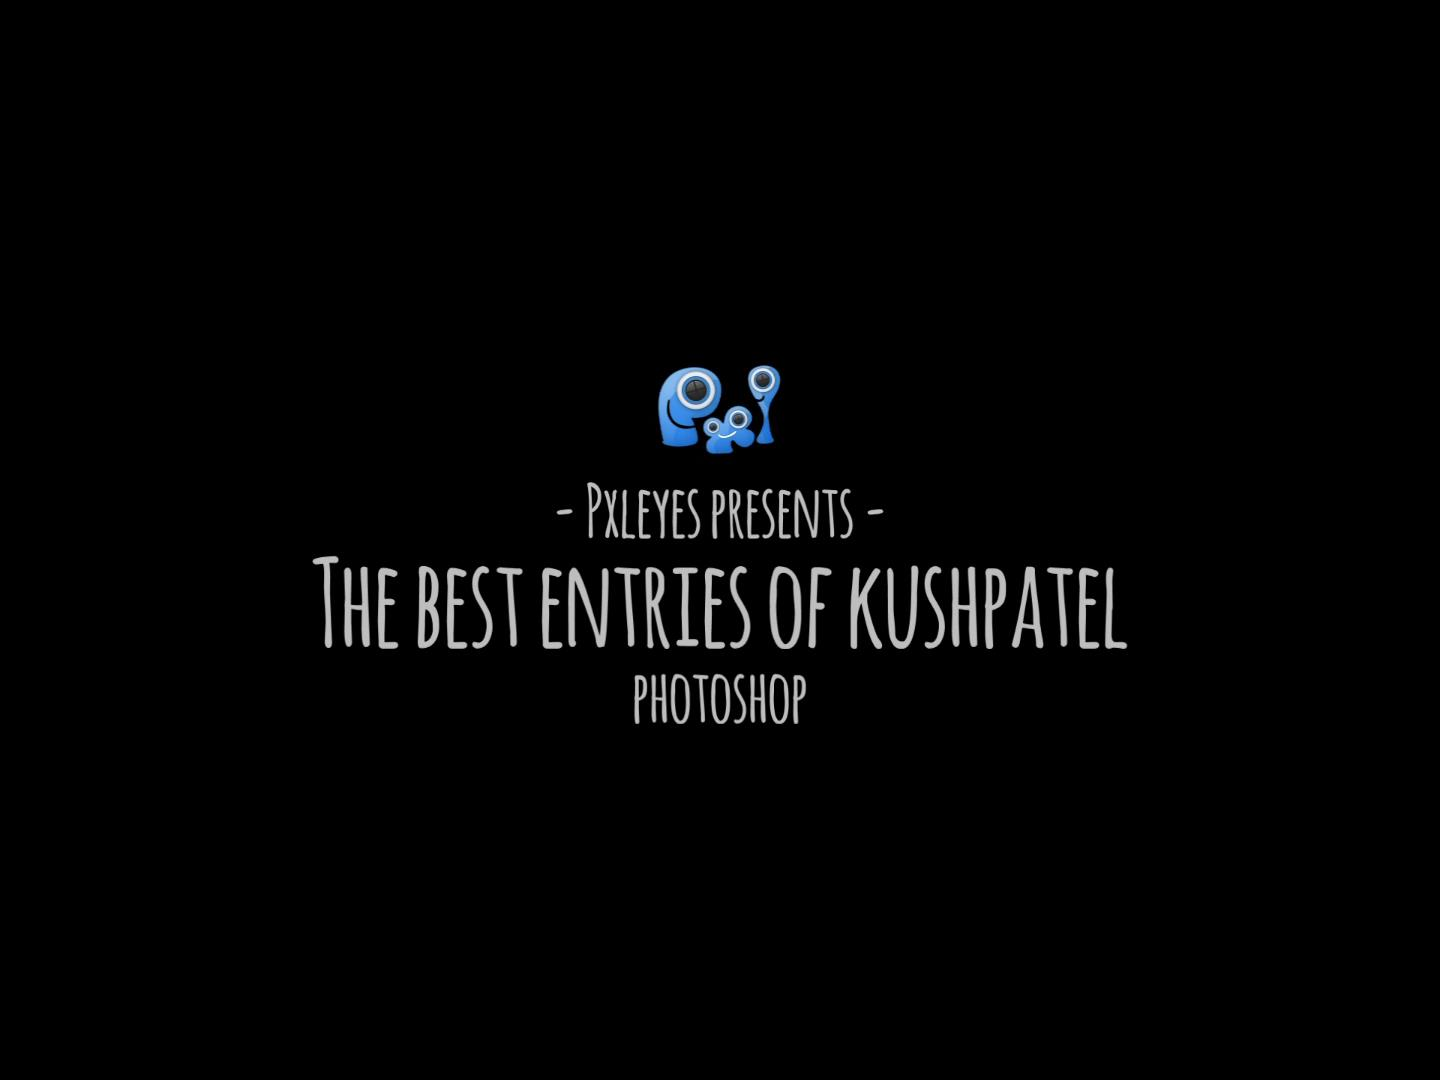 The best entries of kushpatel